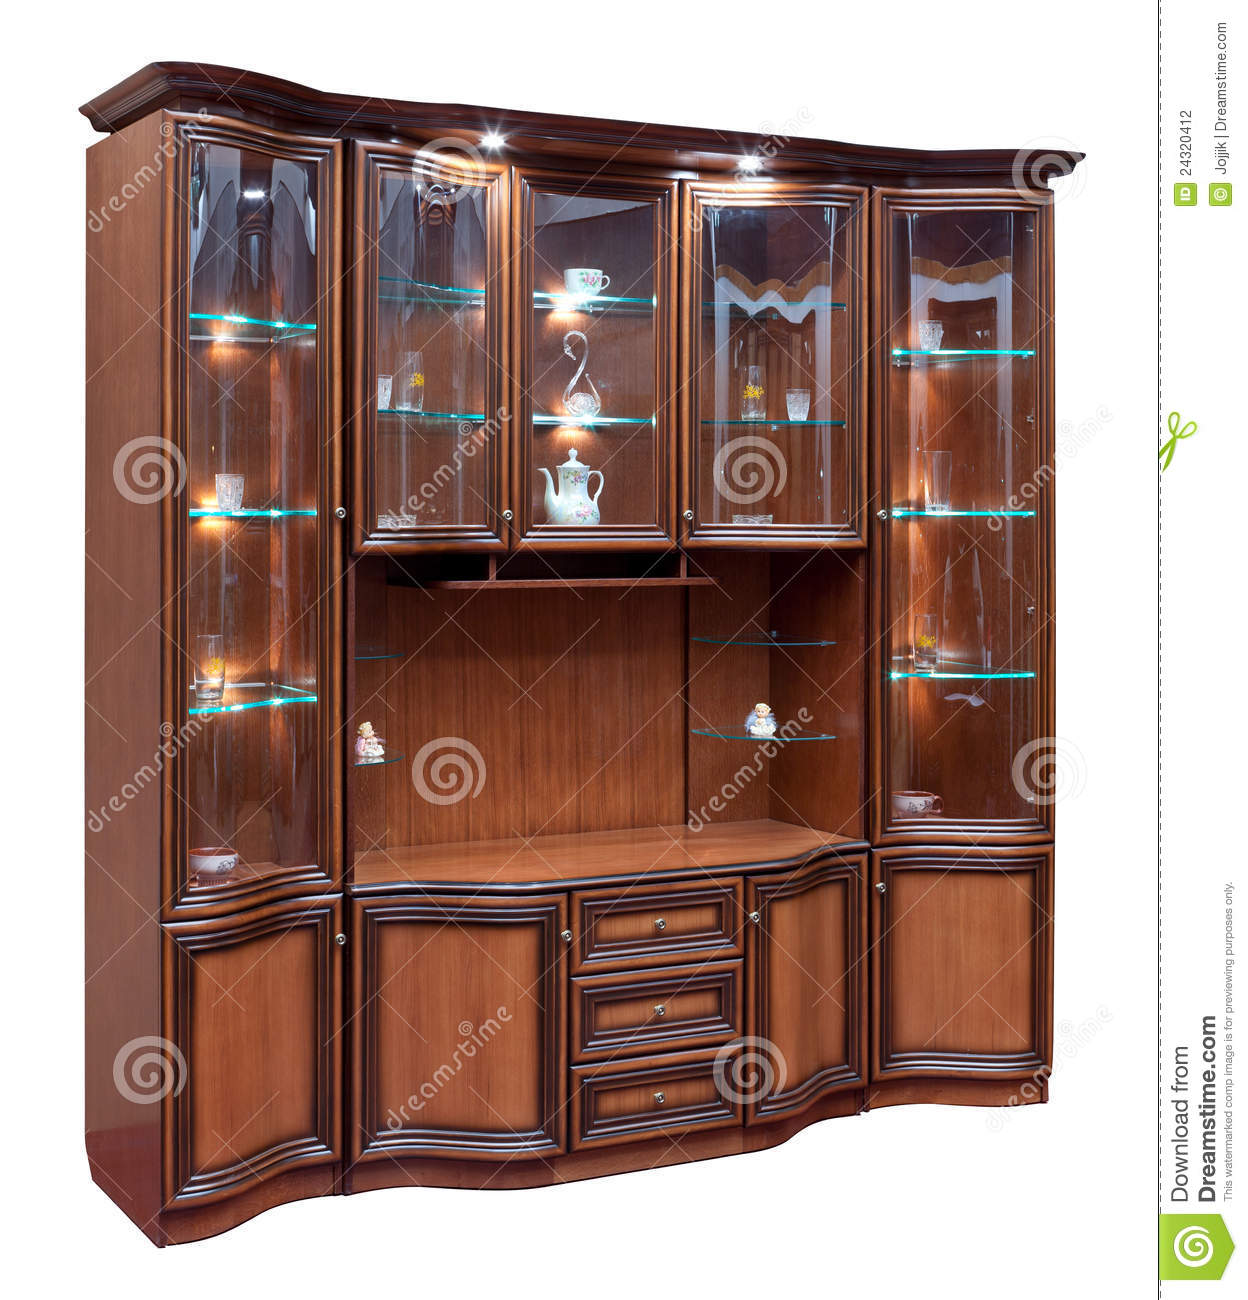 Superb img of Wooden Cupboard With Glass Doors Stock Photography Image: 24320412 with #977C34 color and 1248x1300 pixels